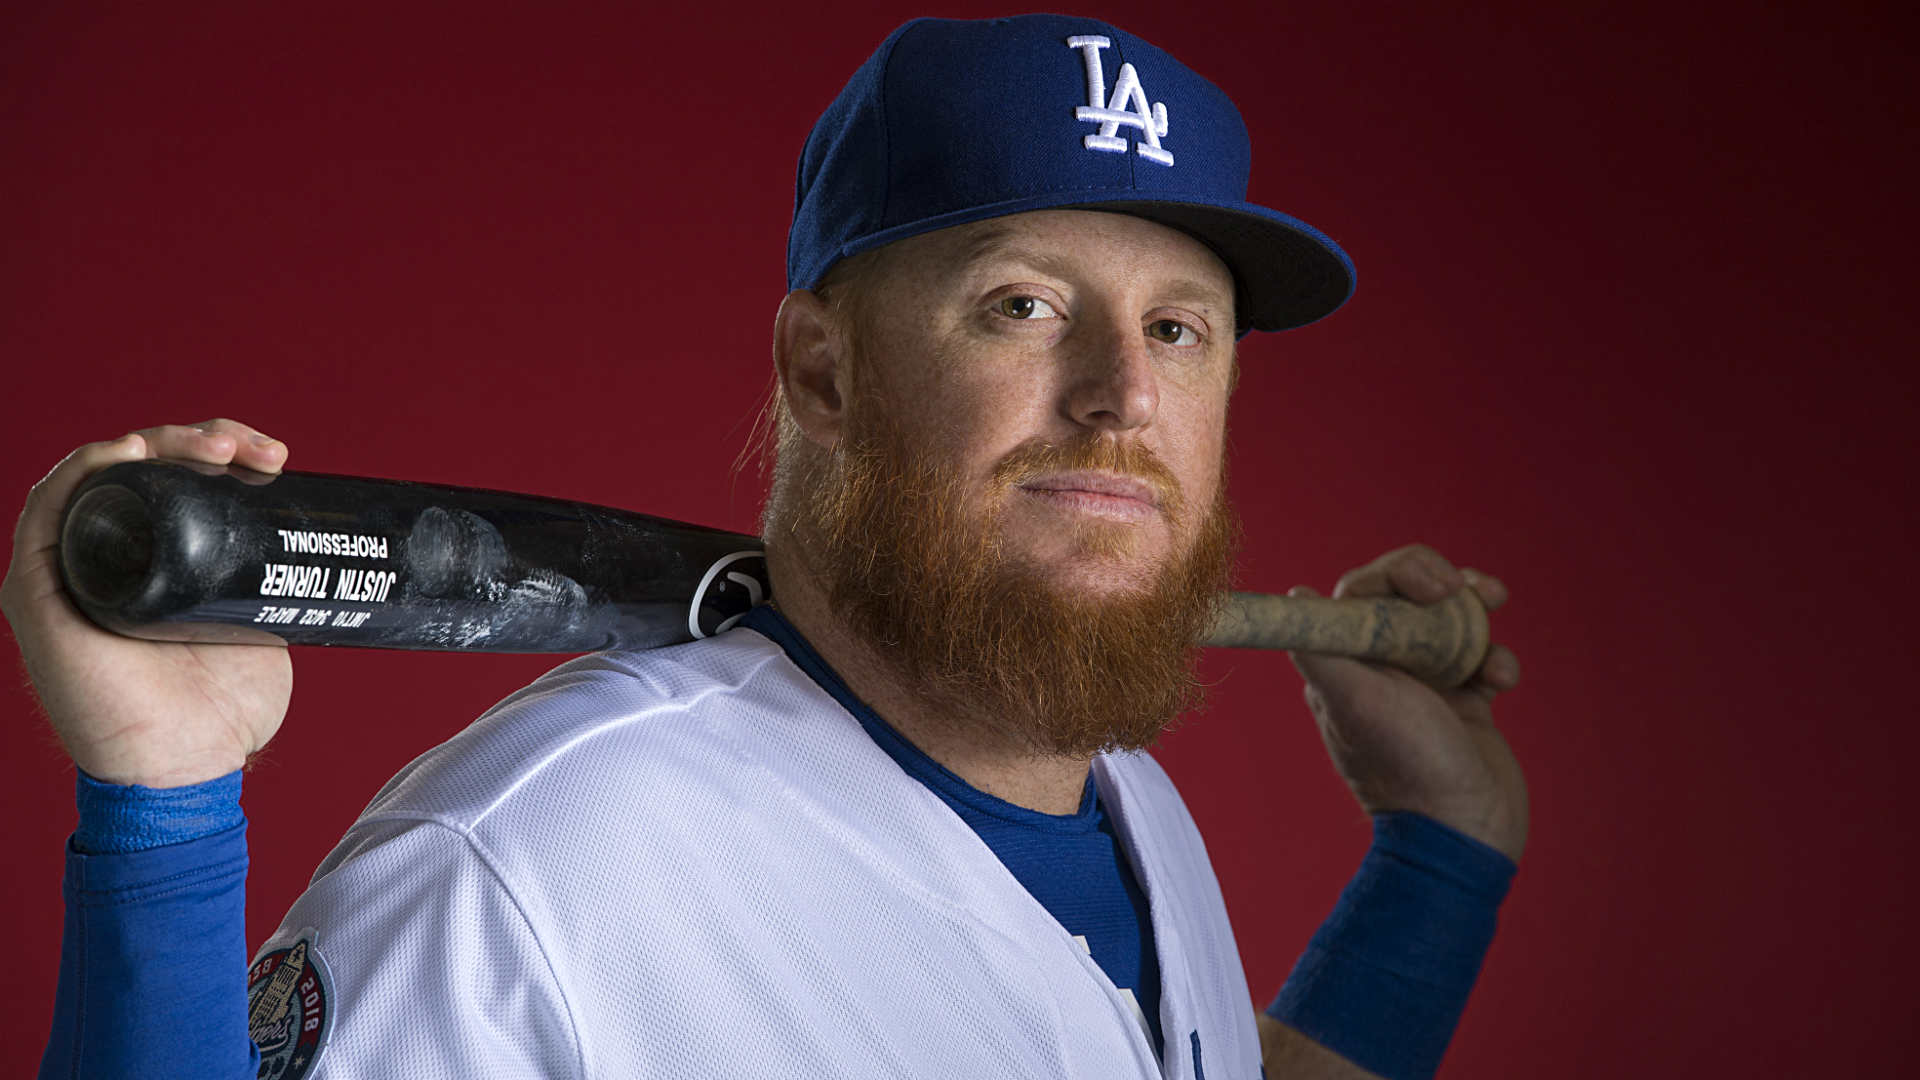 Justin Turner Avoids Surgery on Broken Wrist, Will Wear Brace with Injury